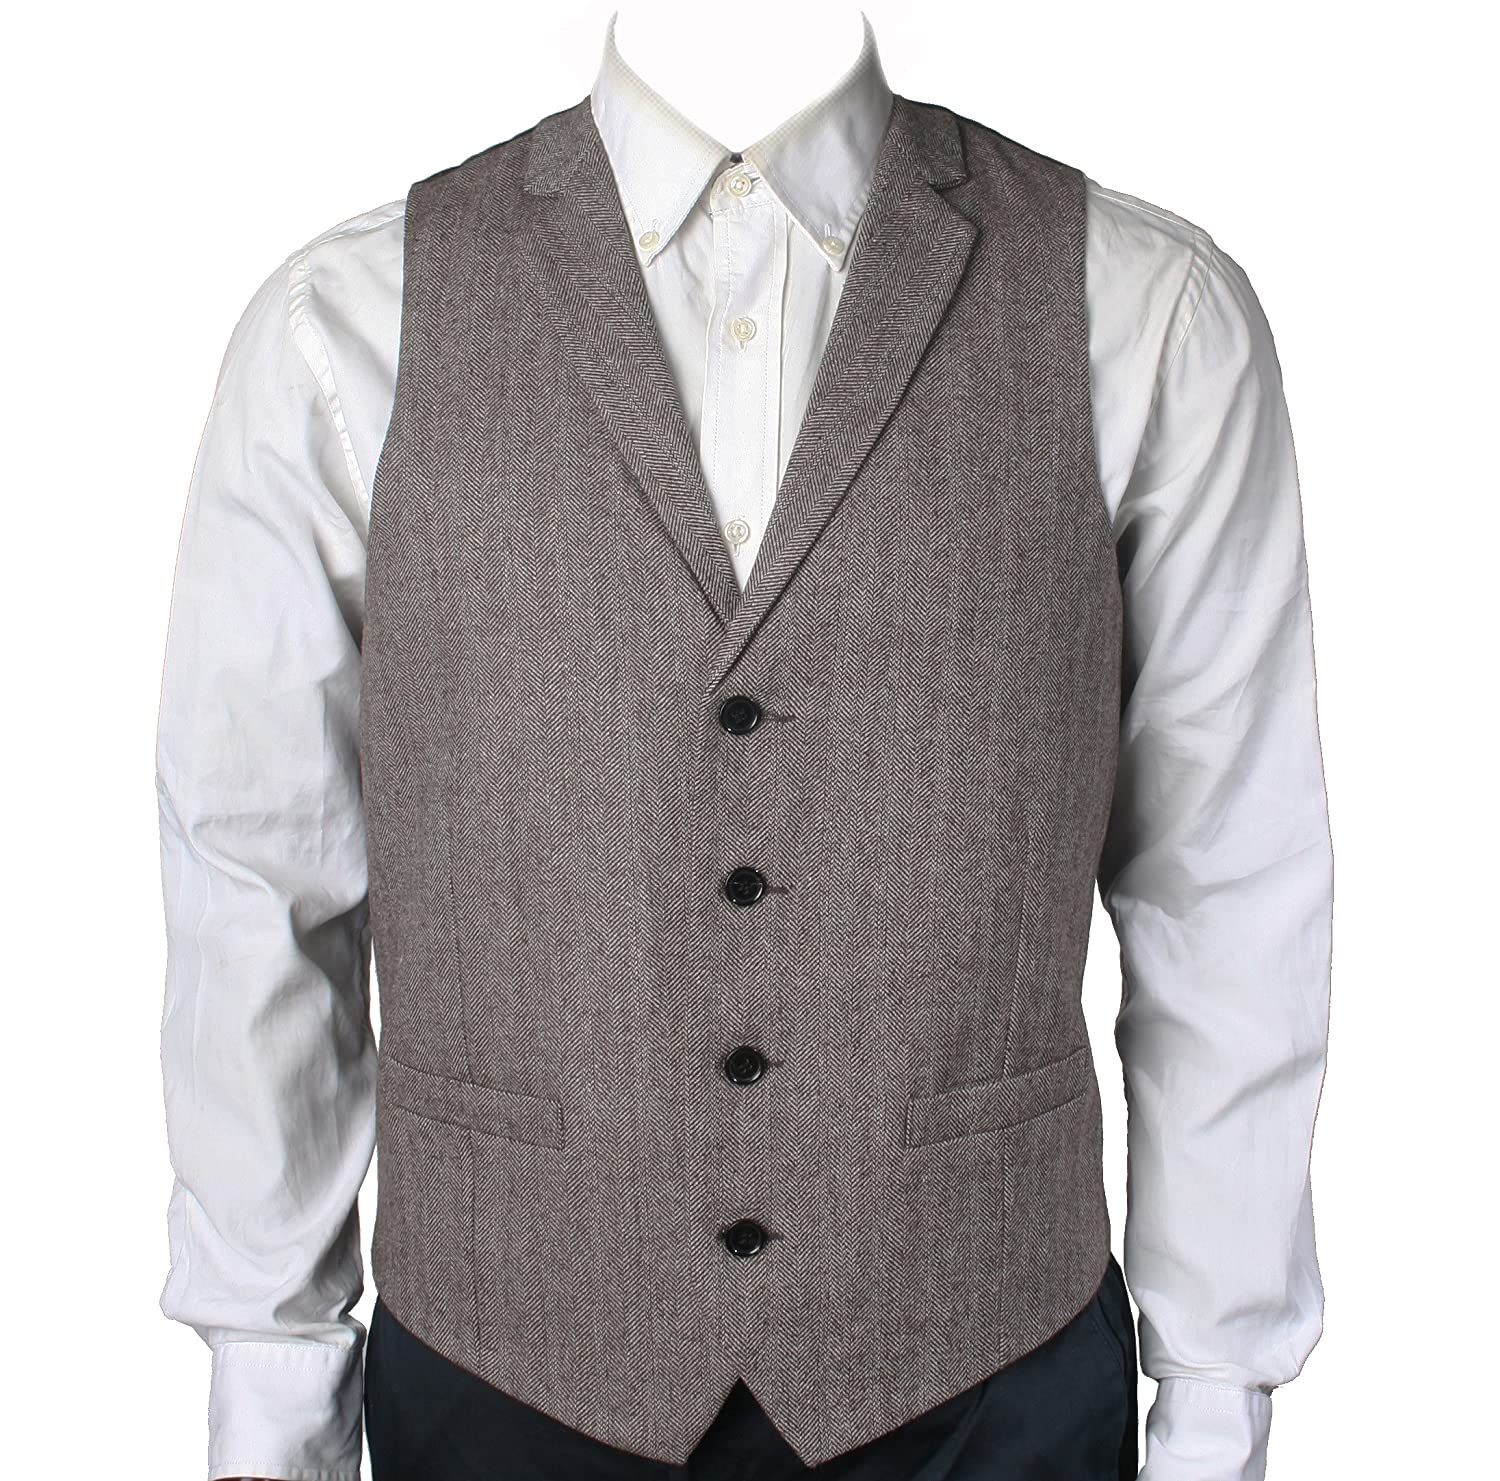 1910s Men's Working Class Clothing Herringbone/Tweed Tailored Collar Suit Vest $37.00 AT vintagedancer.com